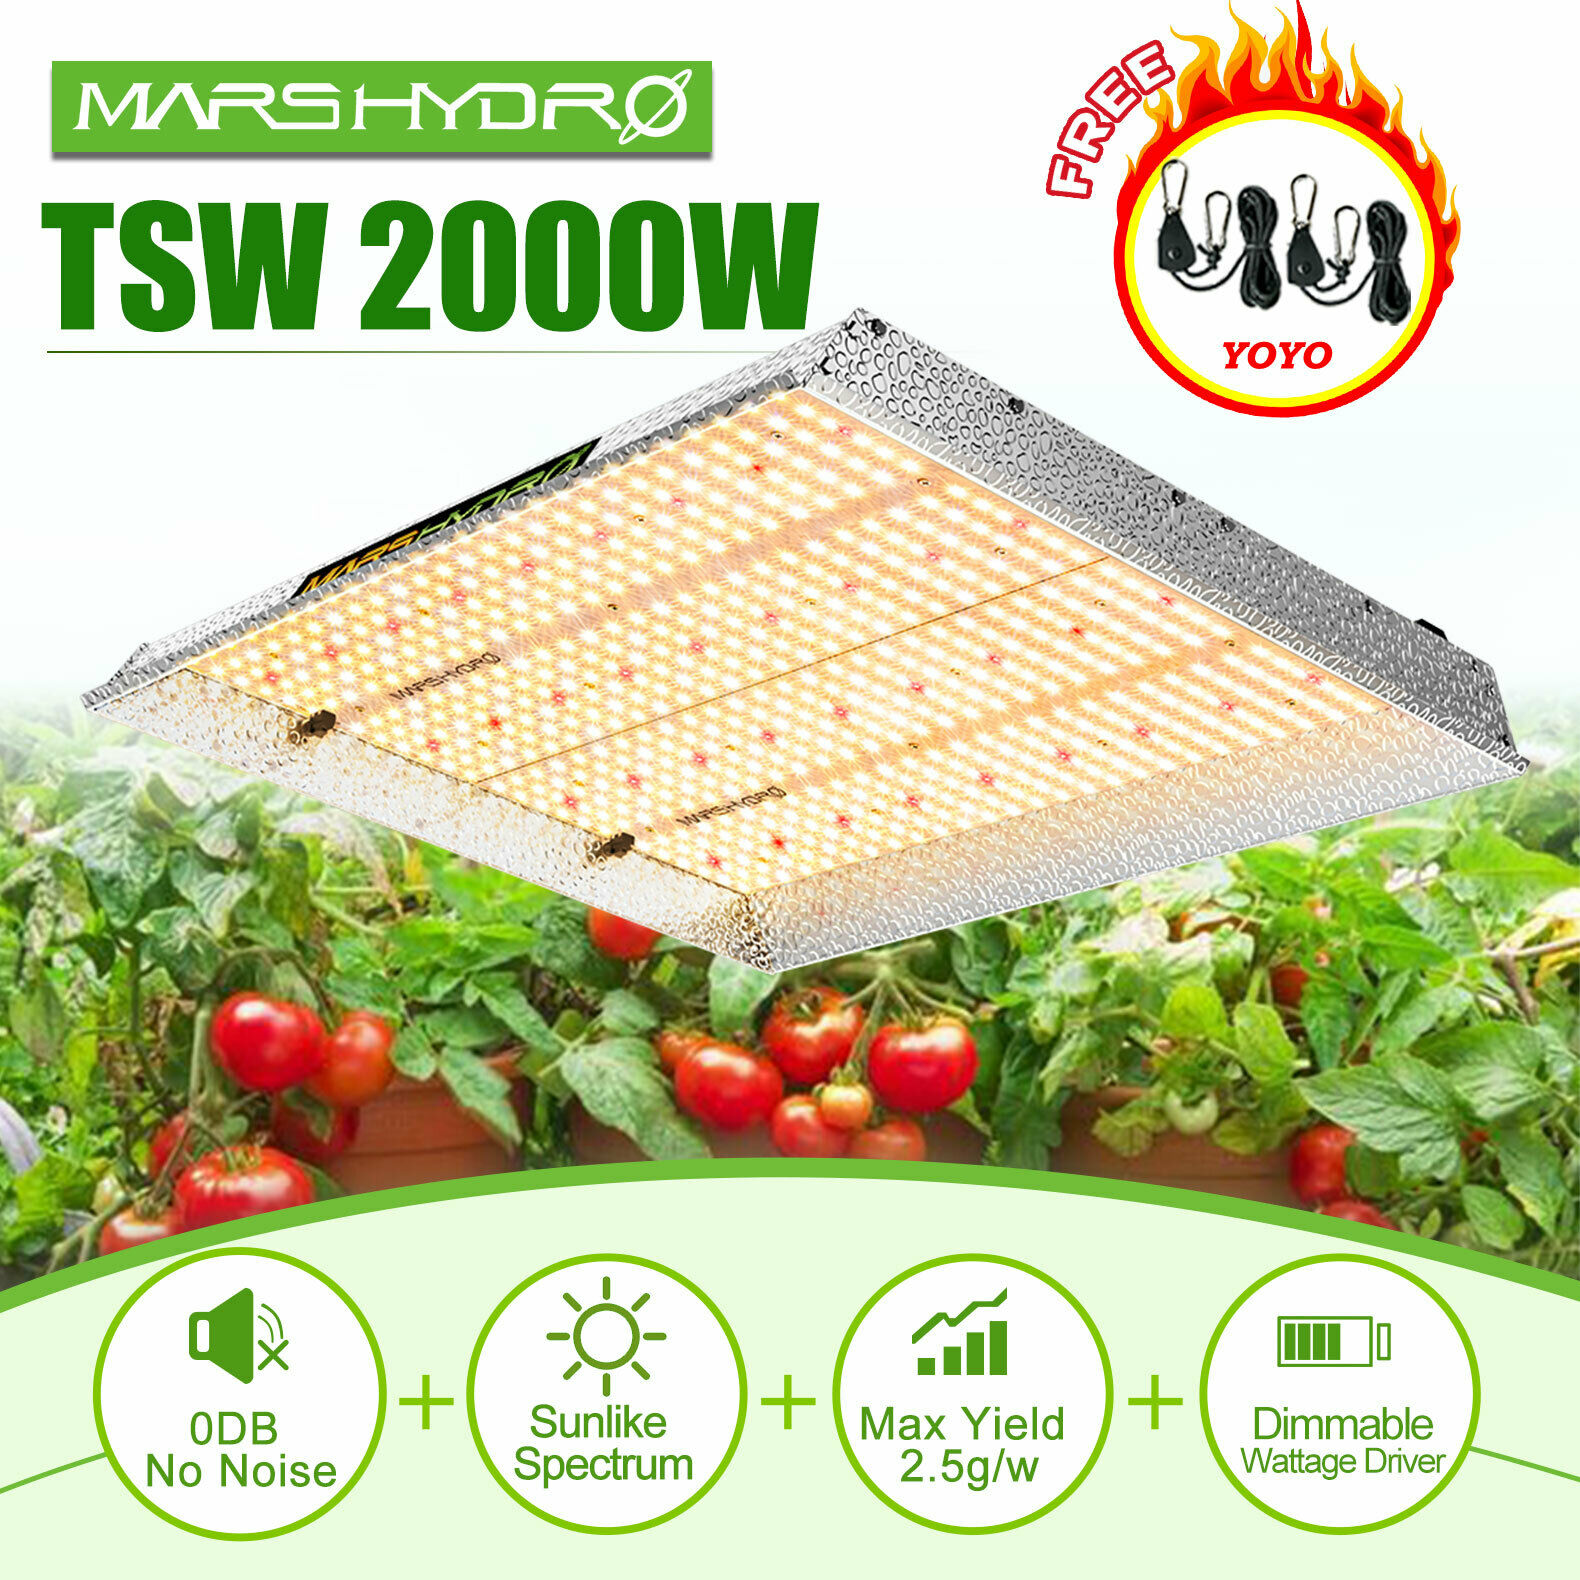 Mars Hydro 2019 TSW 2000W LED Grow Light Full Spectrum Led Grow Light Veg Flower Plant +Indoor Grow Tent Kit Comb Multi-size